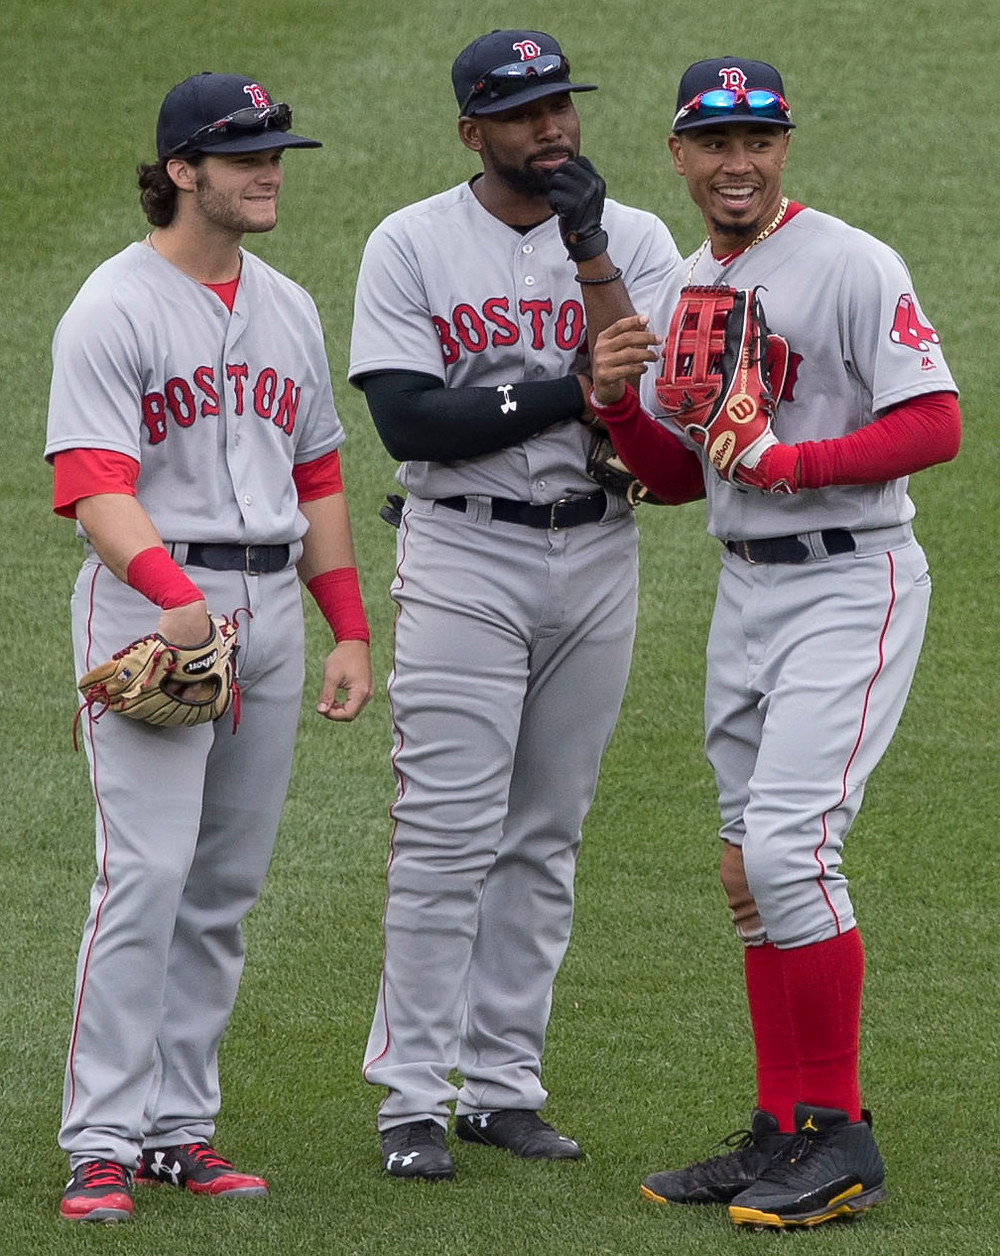 Benintendi, Bradley and Betts in an unusual shift. Picture by Keith Allison.